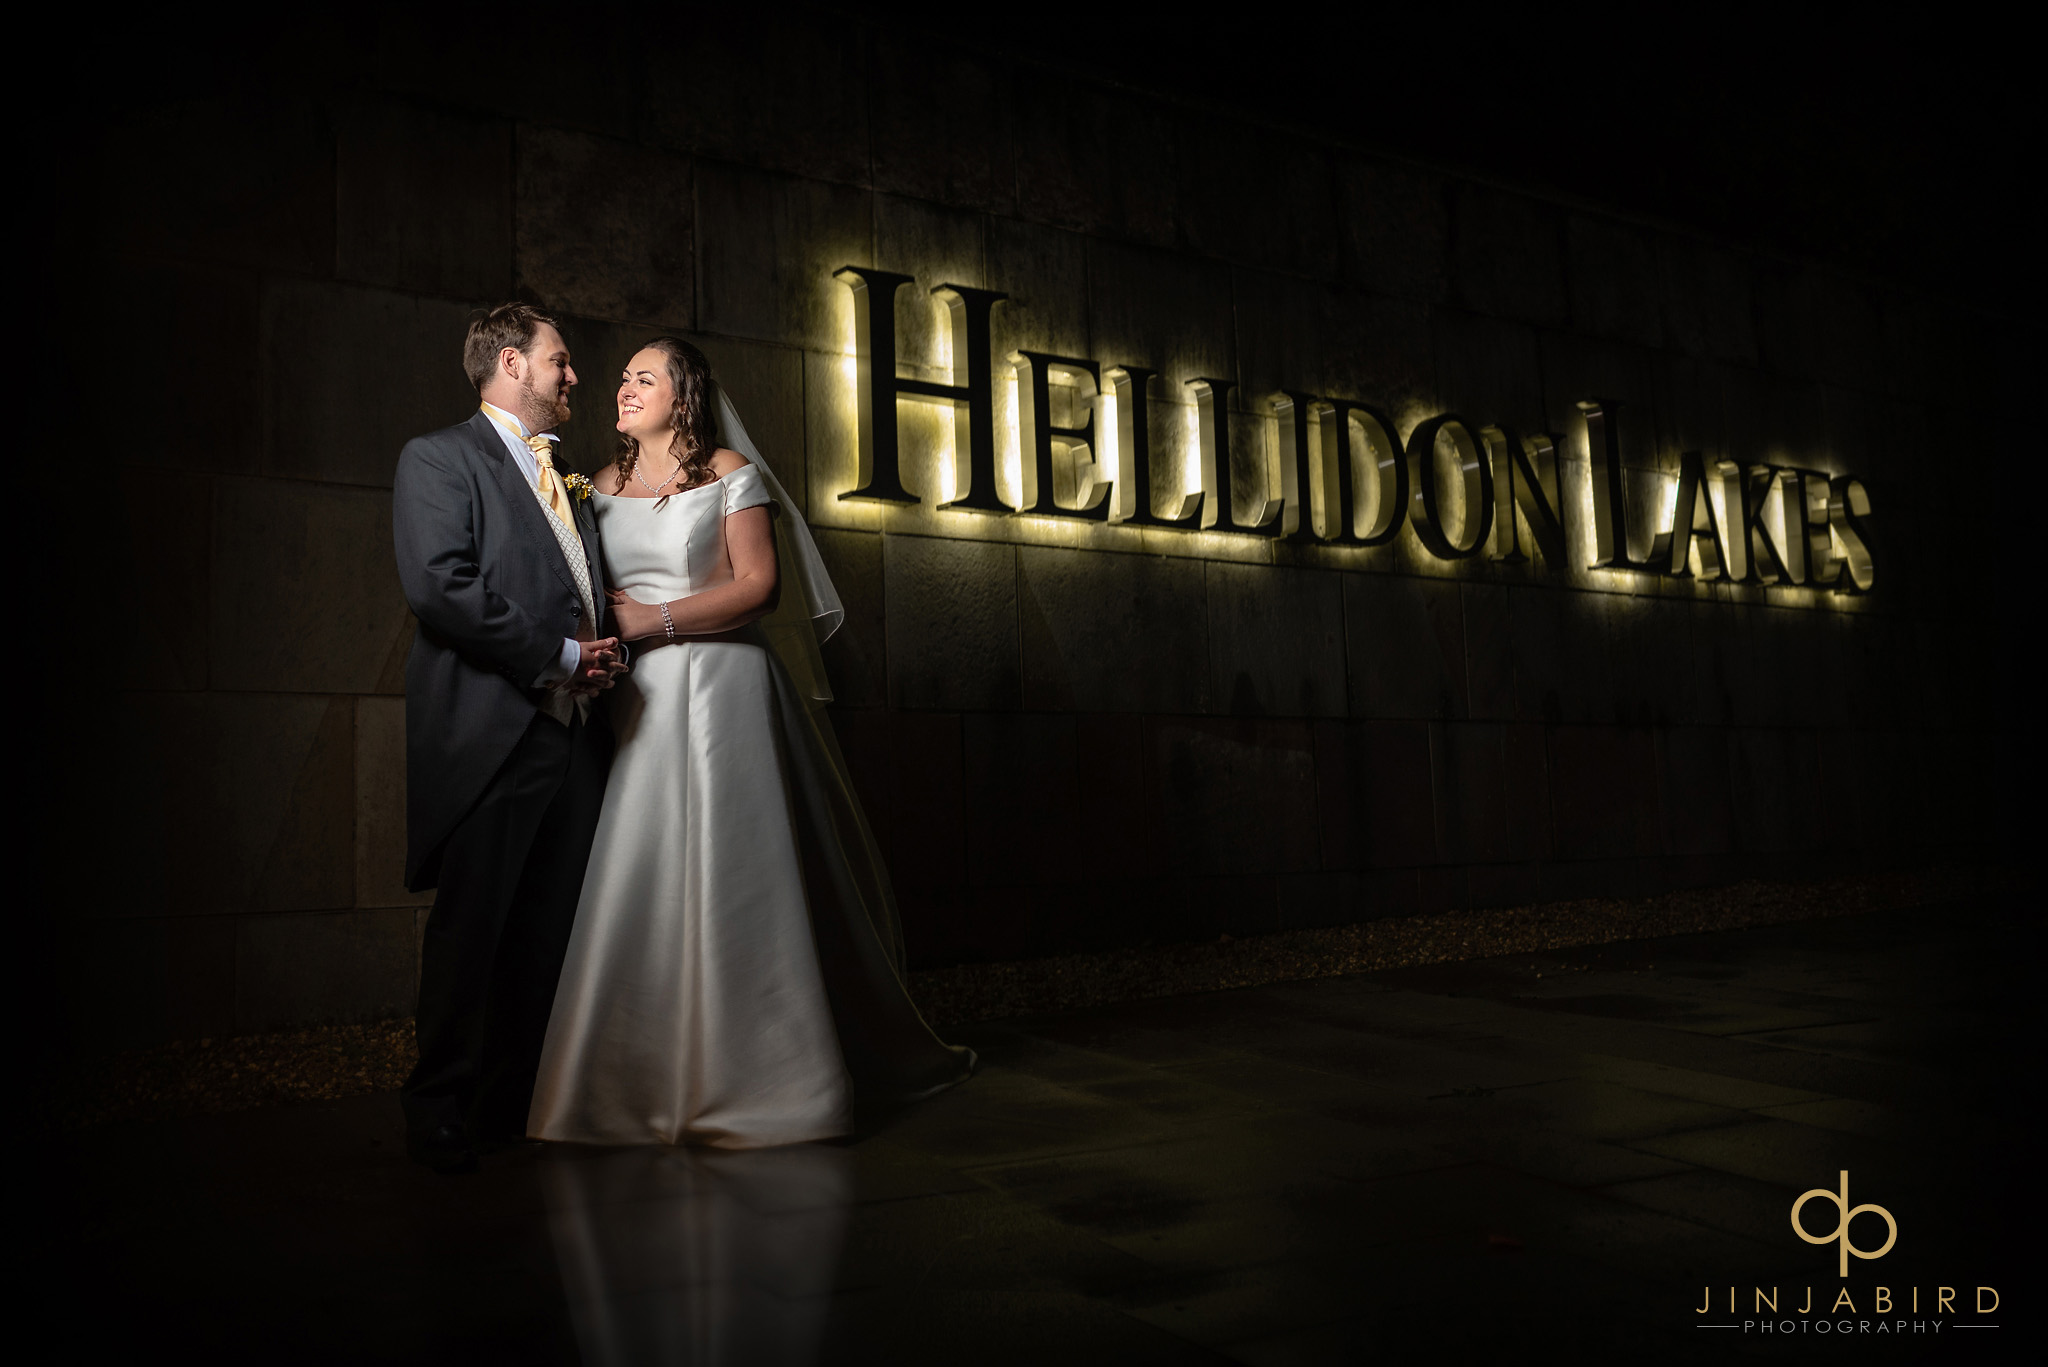 wedding photographer hellidon lakes